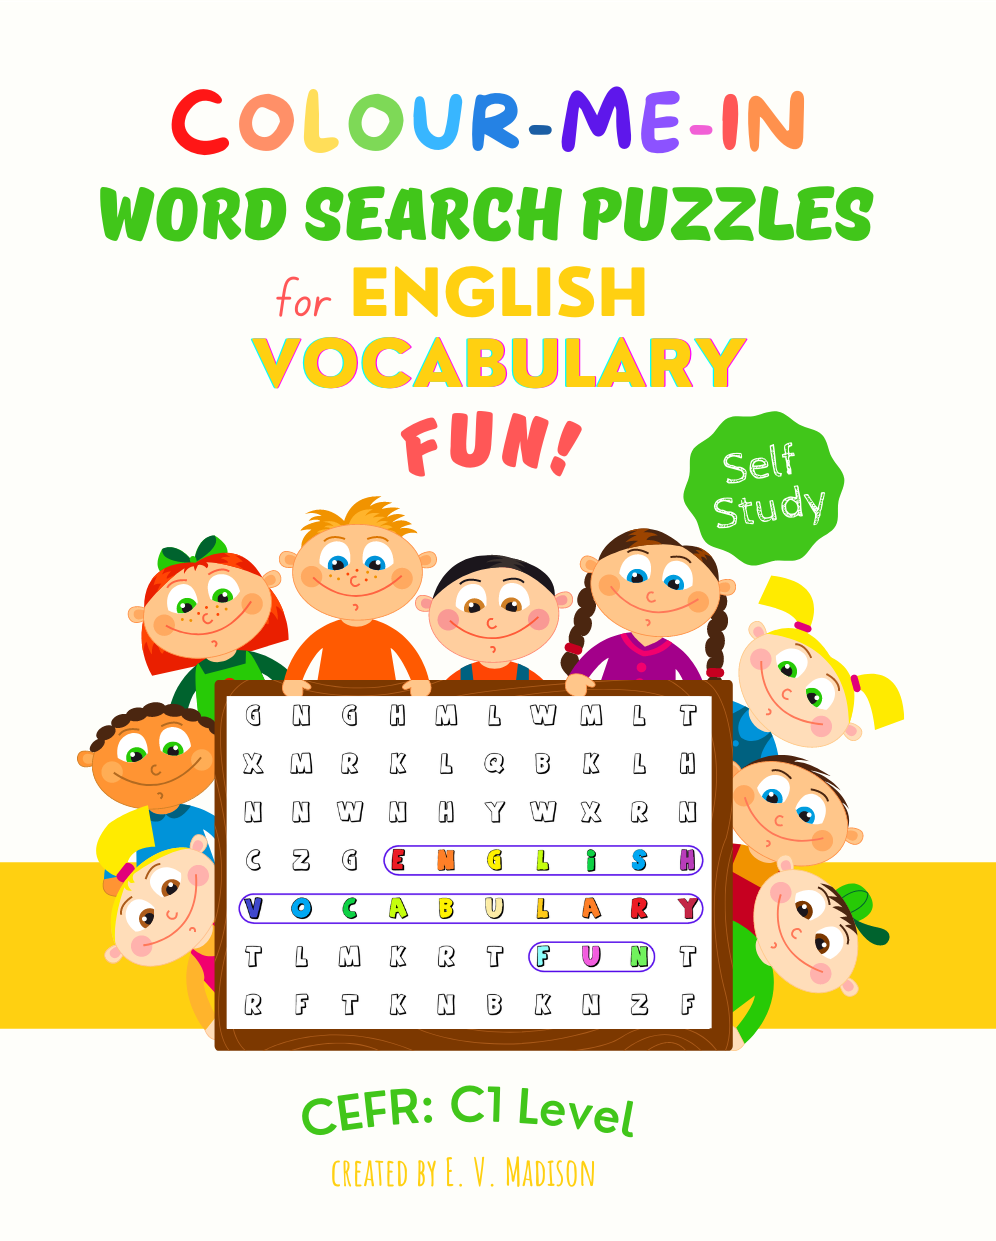 Colour-Me-In Word Search Puzzles for English Vocabulary Fun! C1 Level